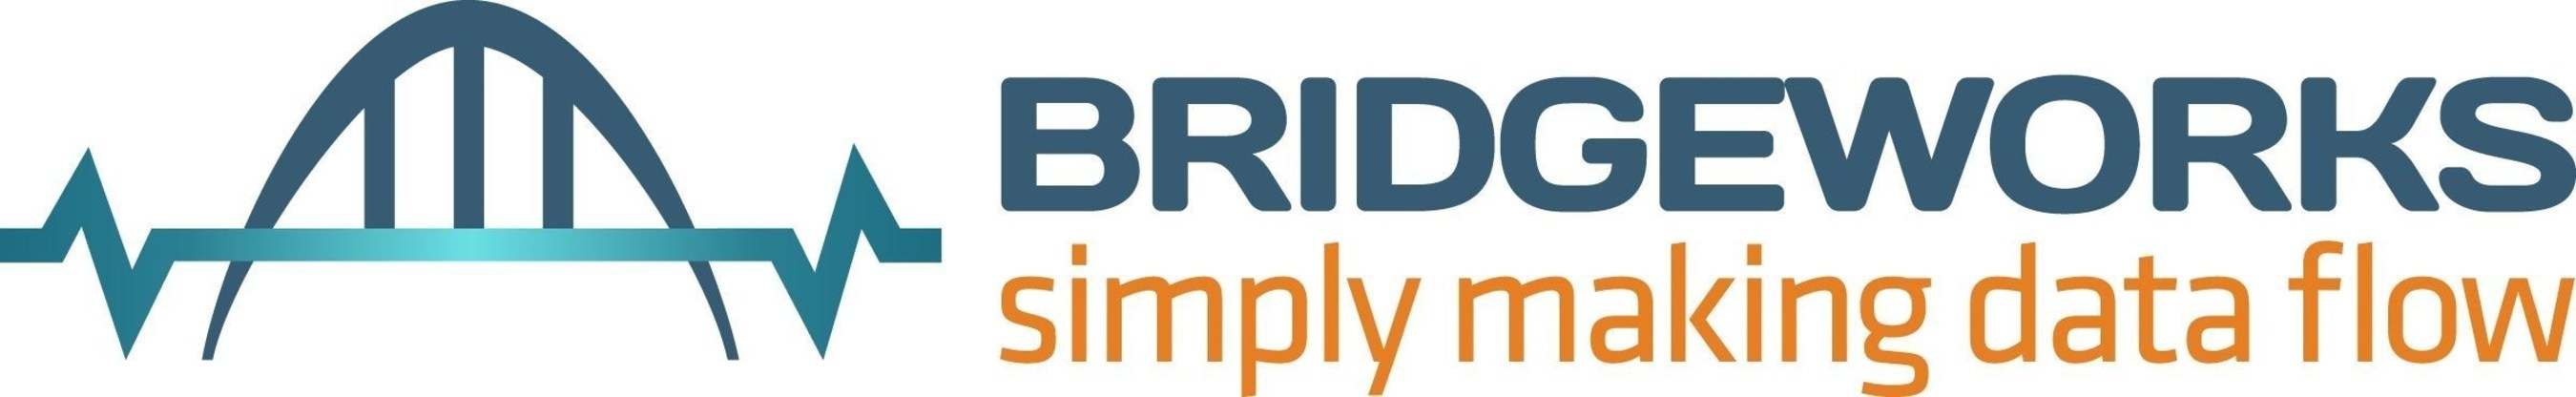 Bridgeworks Announces 210x Faster WAN Transfers for IBM Spectrum Protect Customers